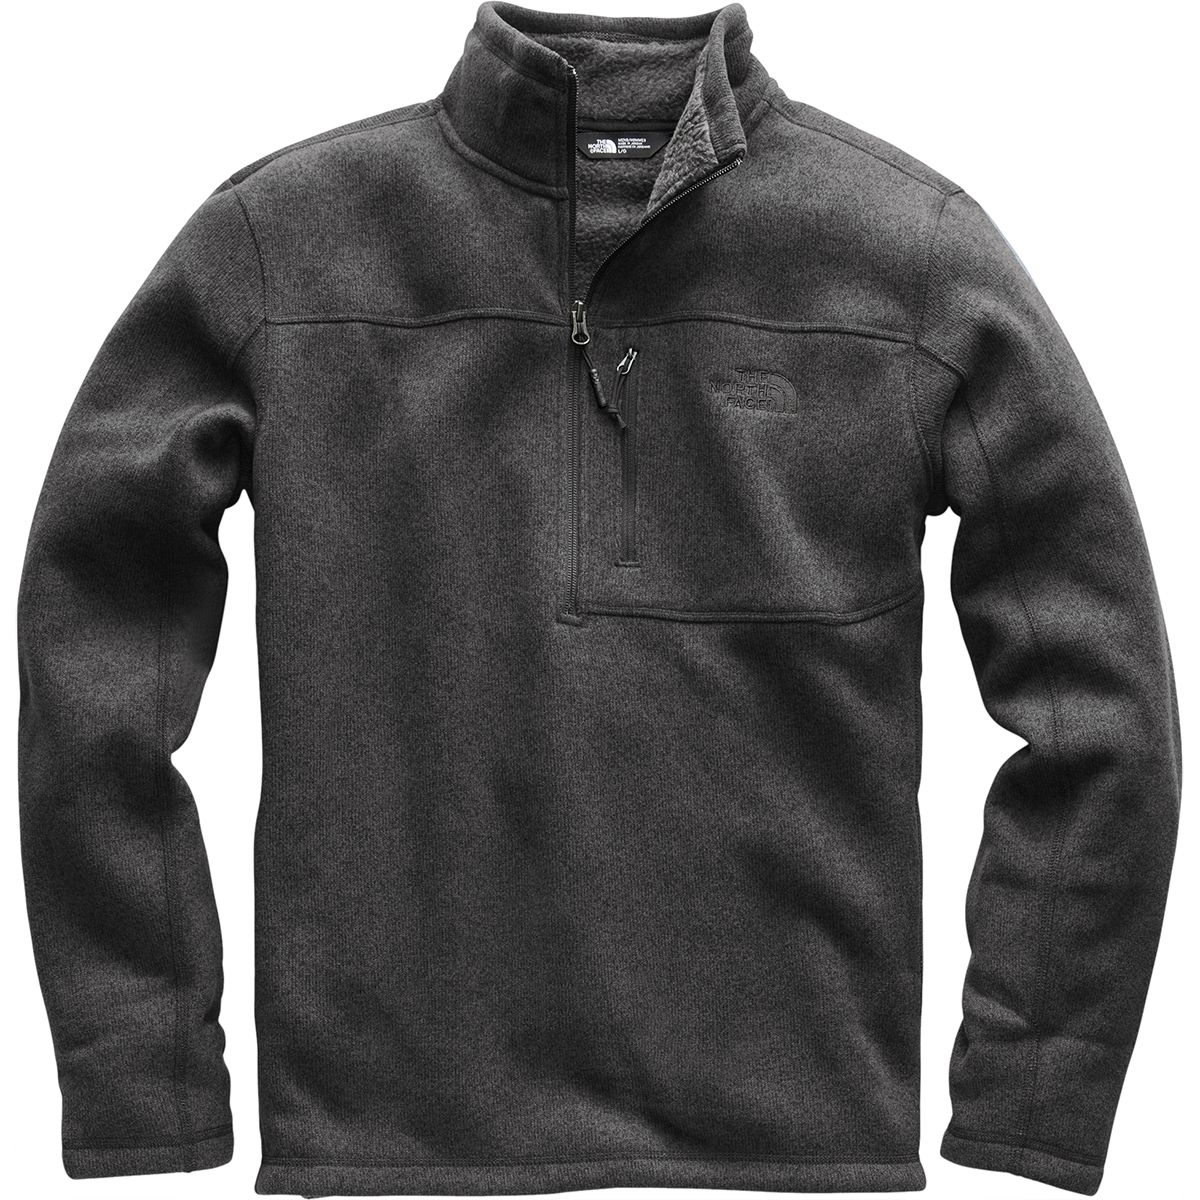 The North Face Gordon Lyon 1/4 Zip